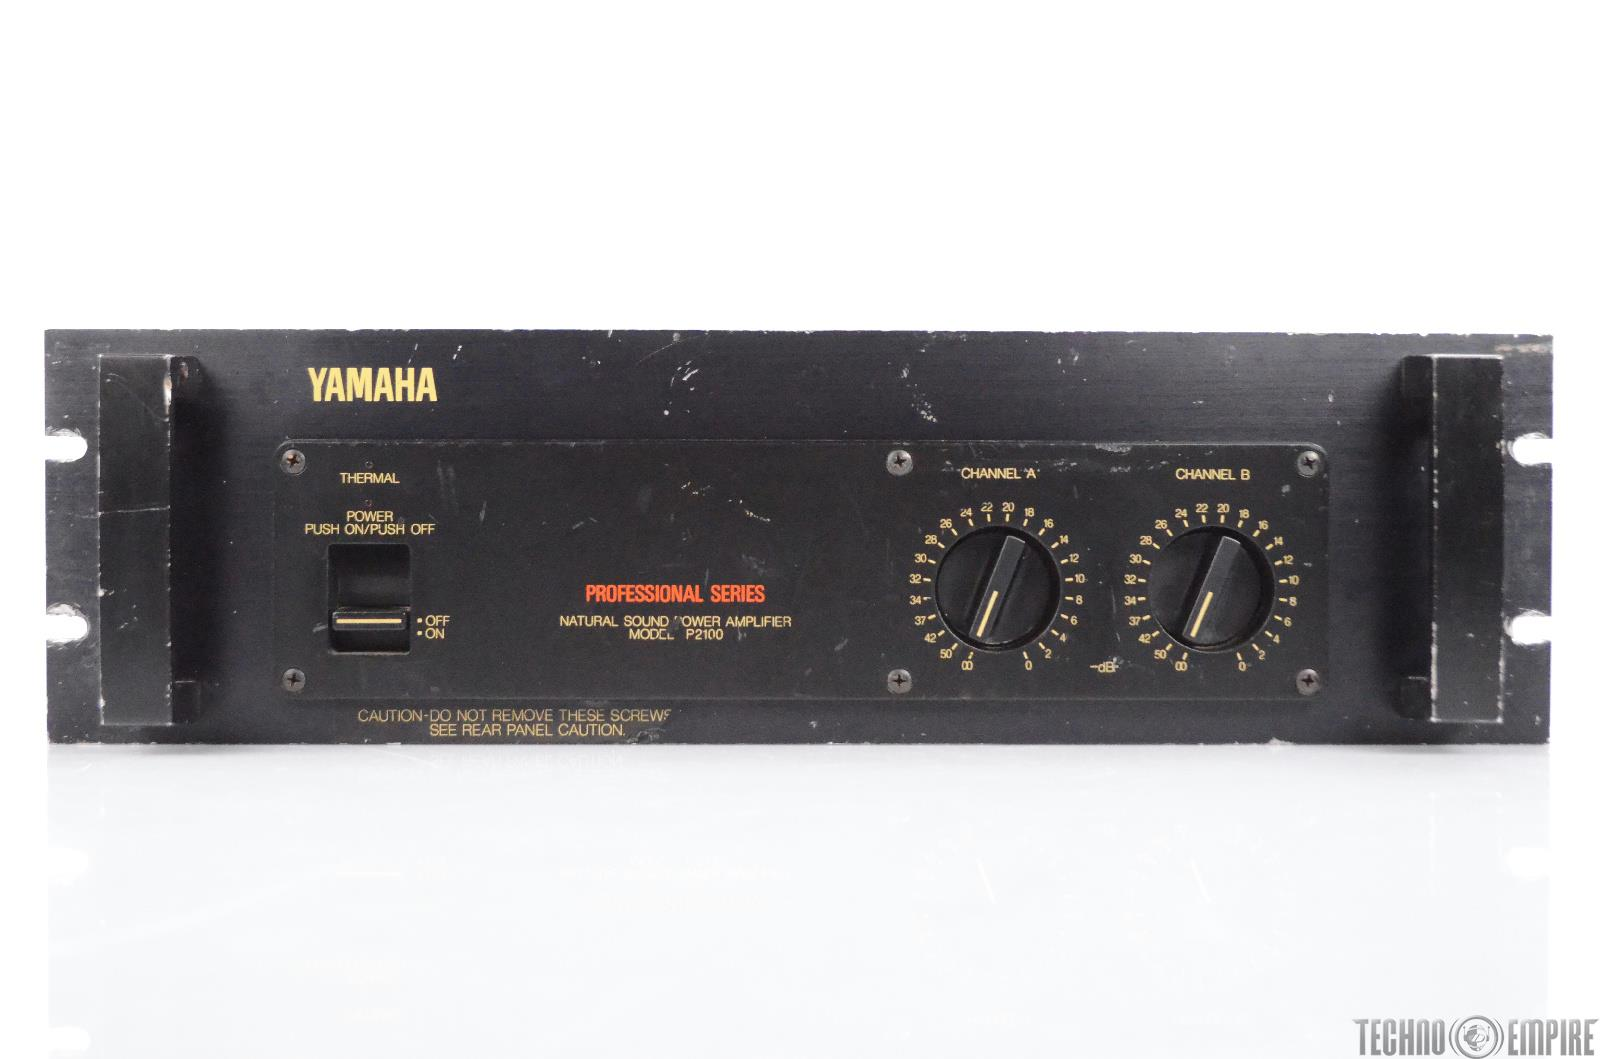 Yamaha P2100 Stereo Power Amplifier Amp Pro Series For Parts or Repair #30378